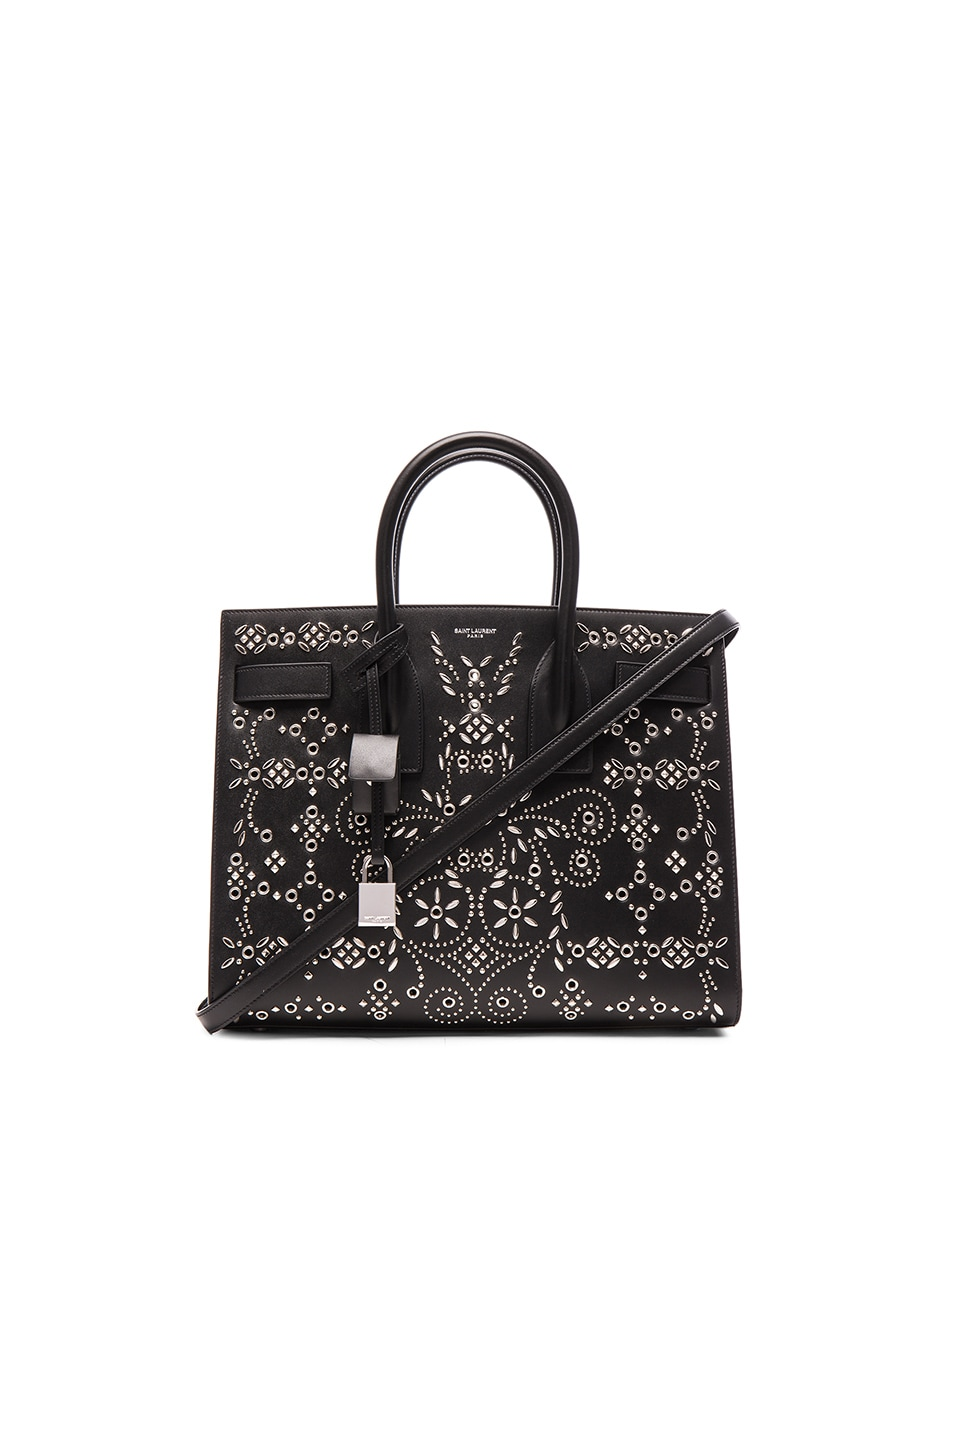 31db19ba14 Image 1 of Saint Laurent Small Bandana Embroidery Sac De Jour in Black